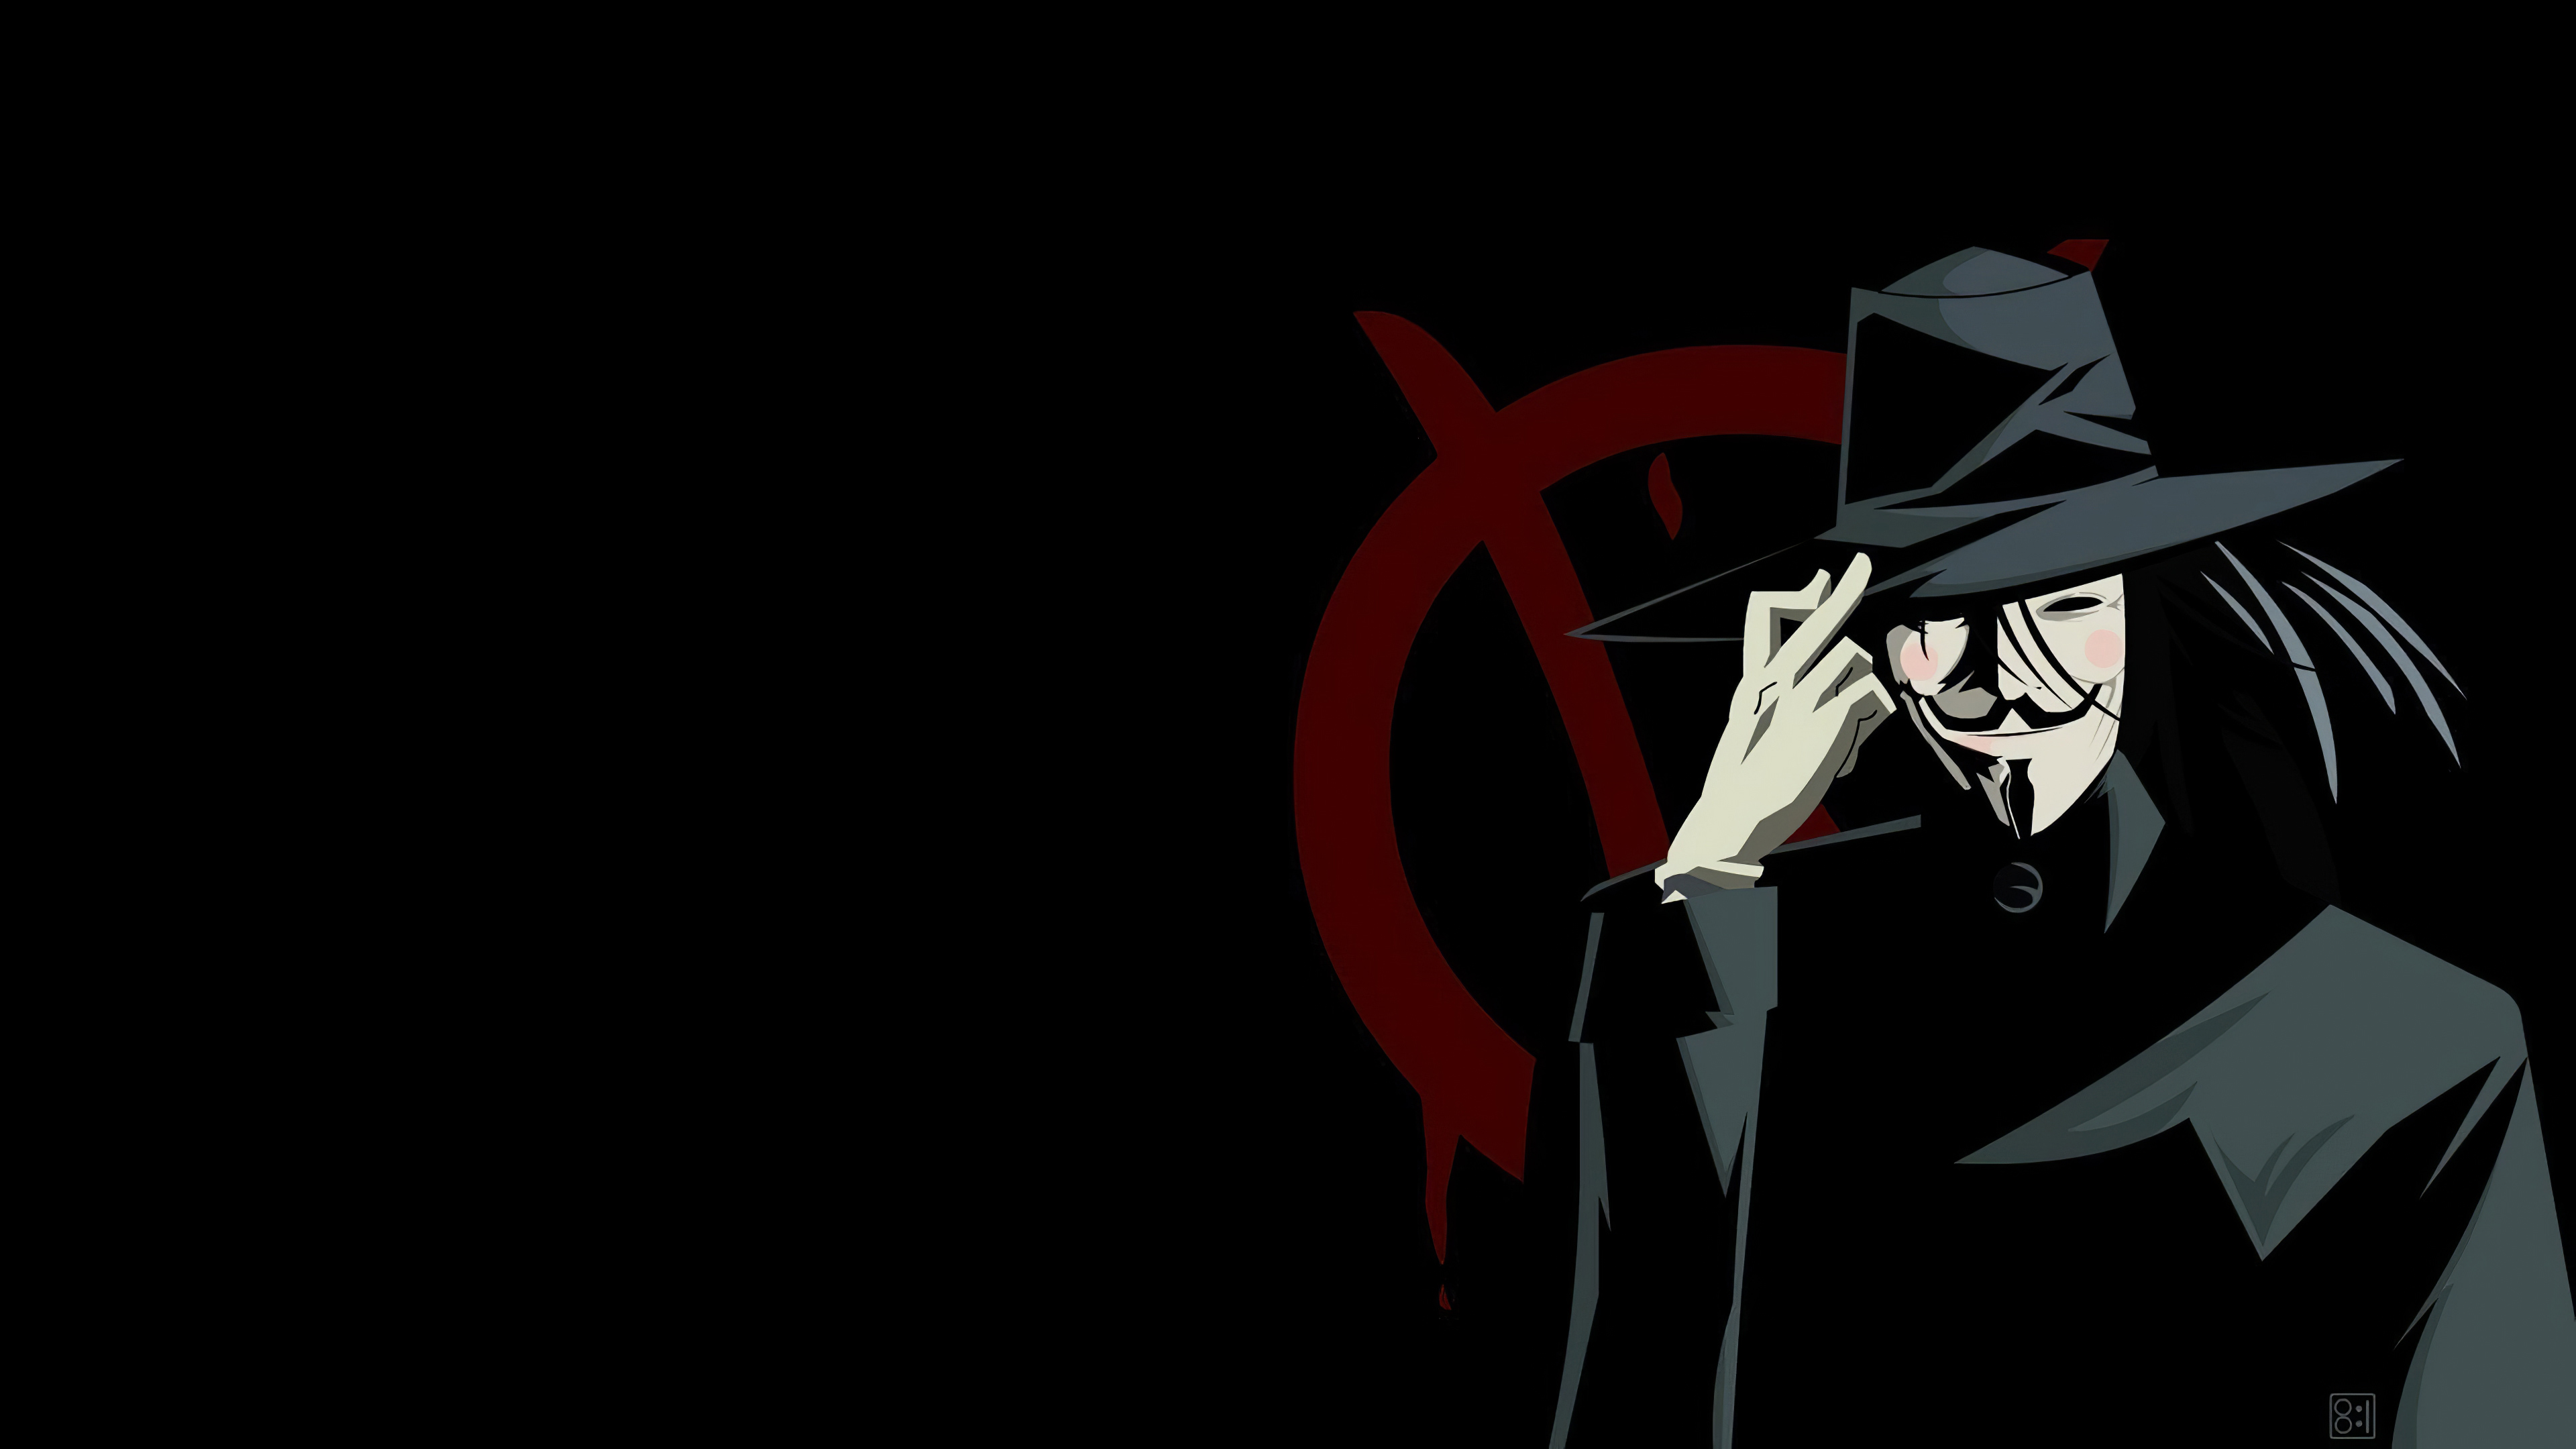 V For Vendetta Anonymus 4k Hd Computer 4k Wallpapers Images